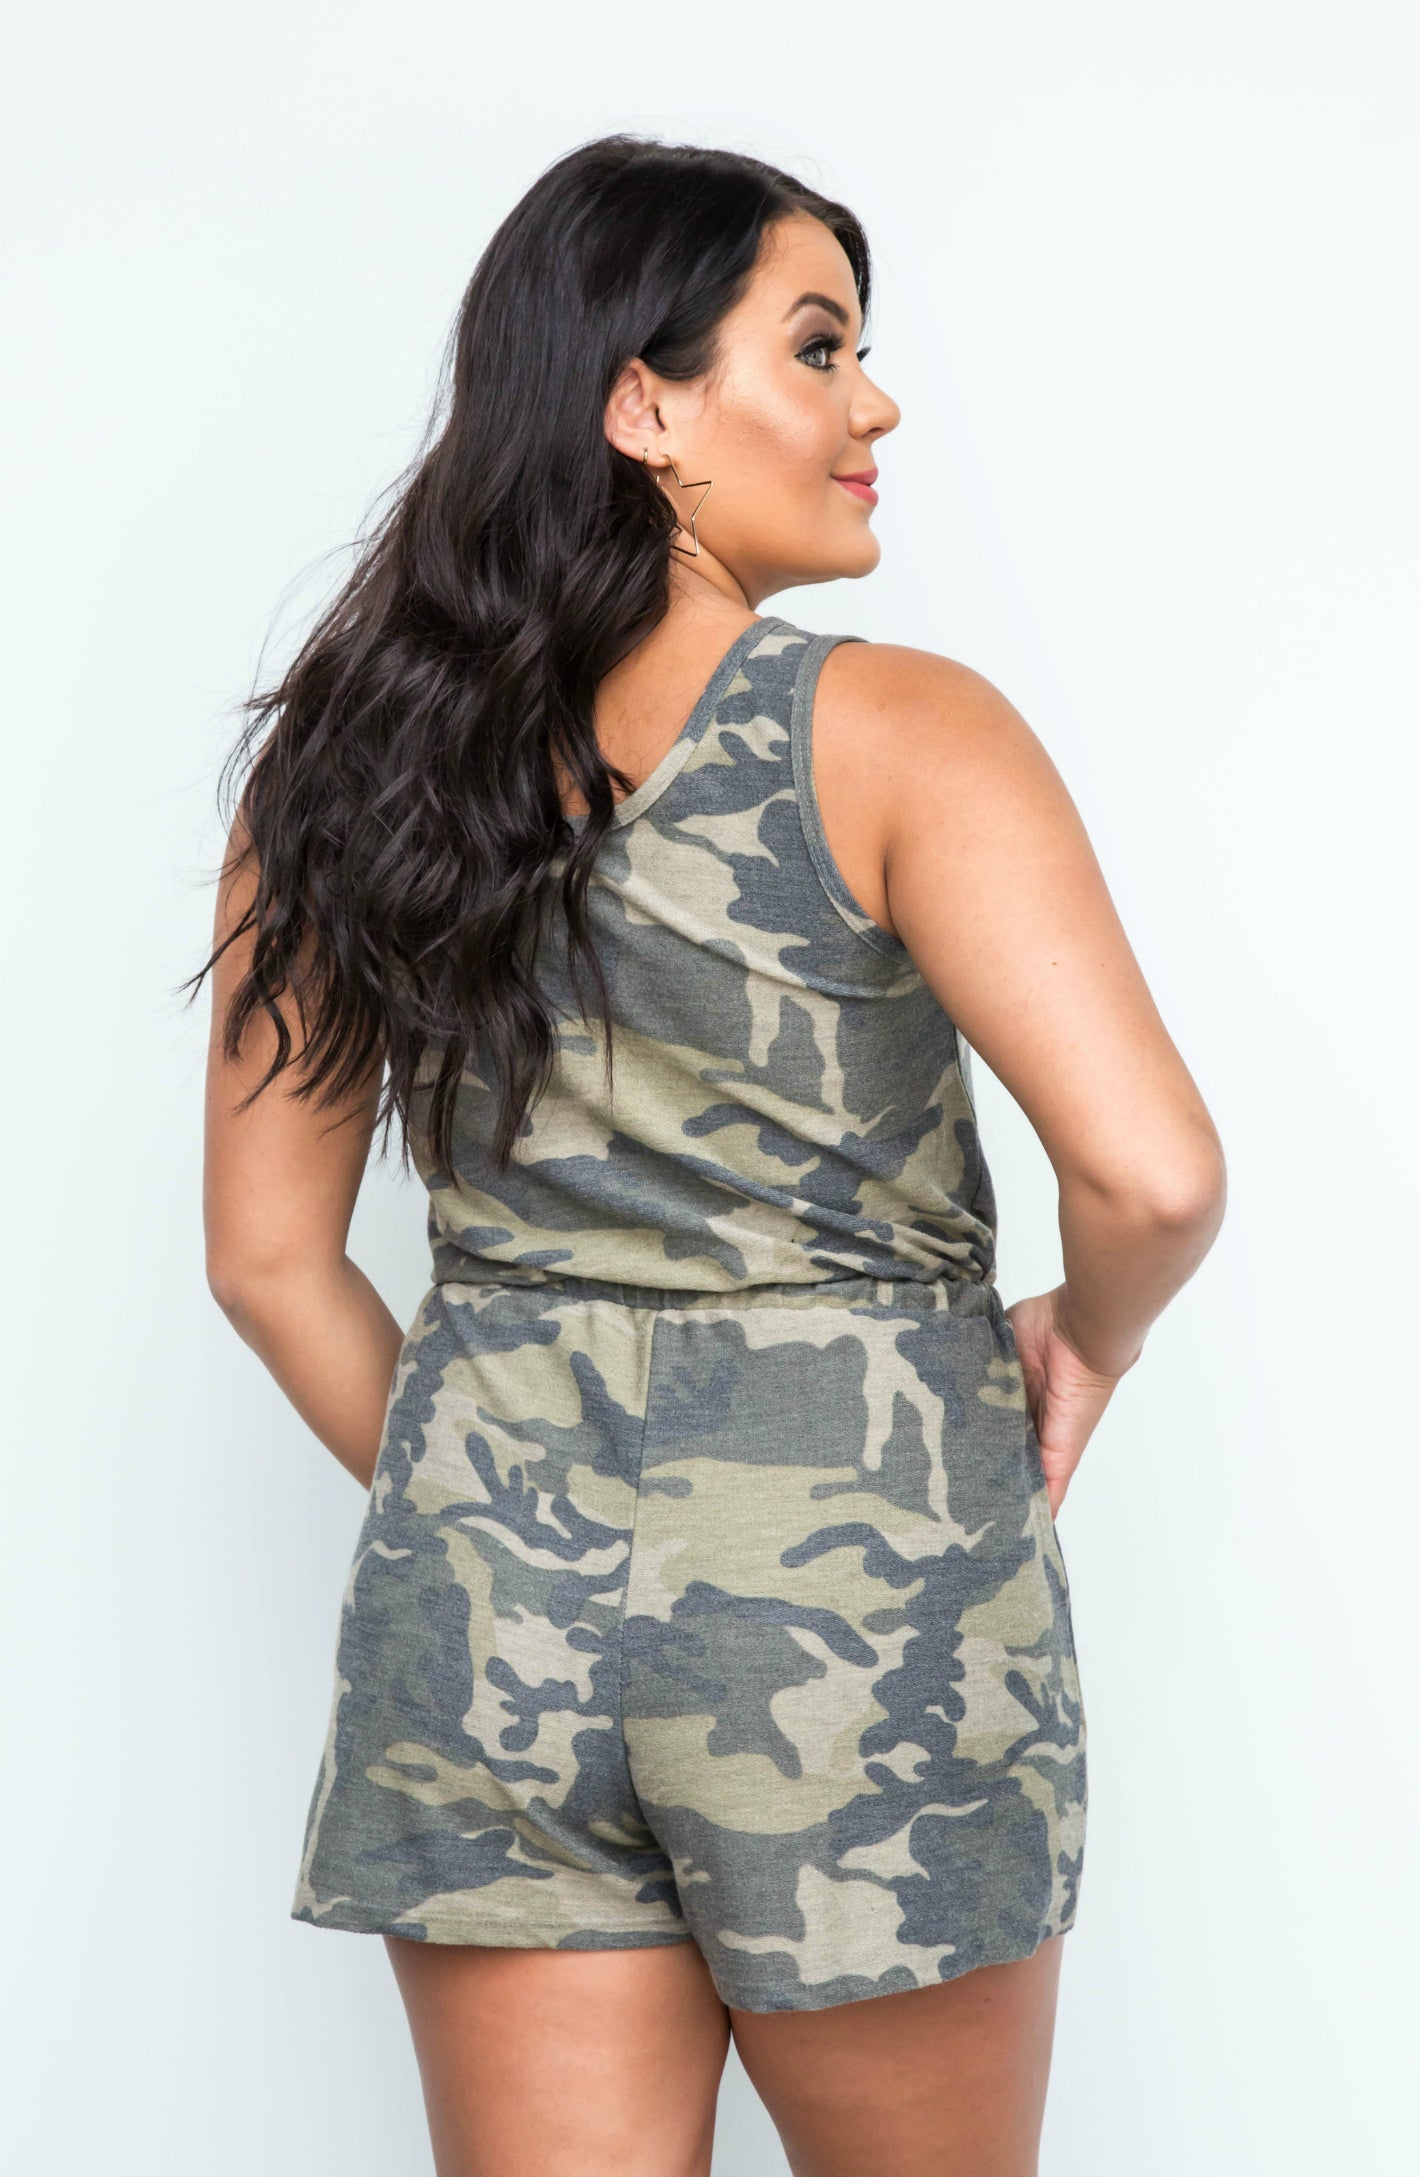 63553f6d07409 Carry Me Home Camo Short Romper – Apricot Lane Boutique - Peoria